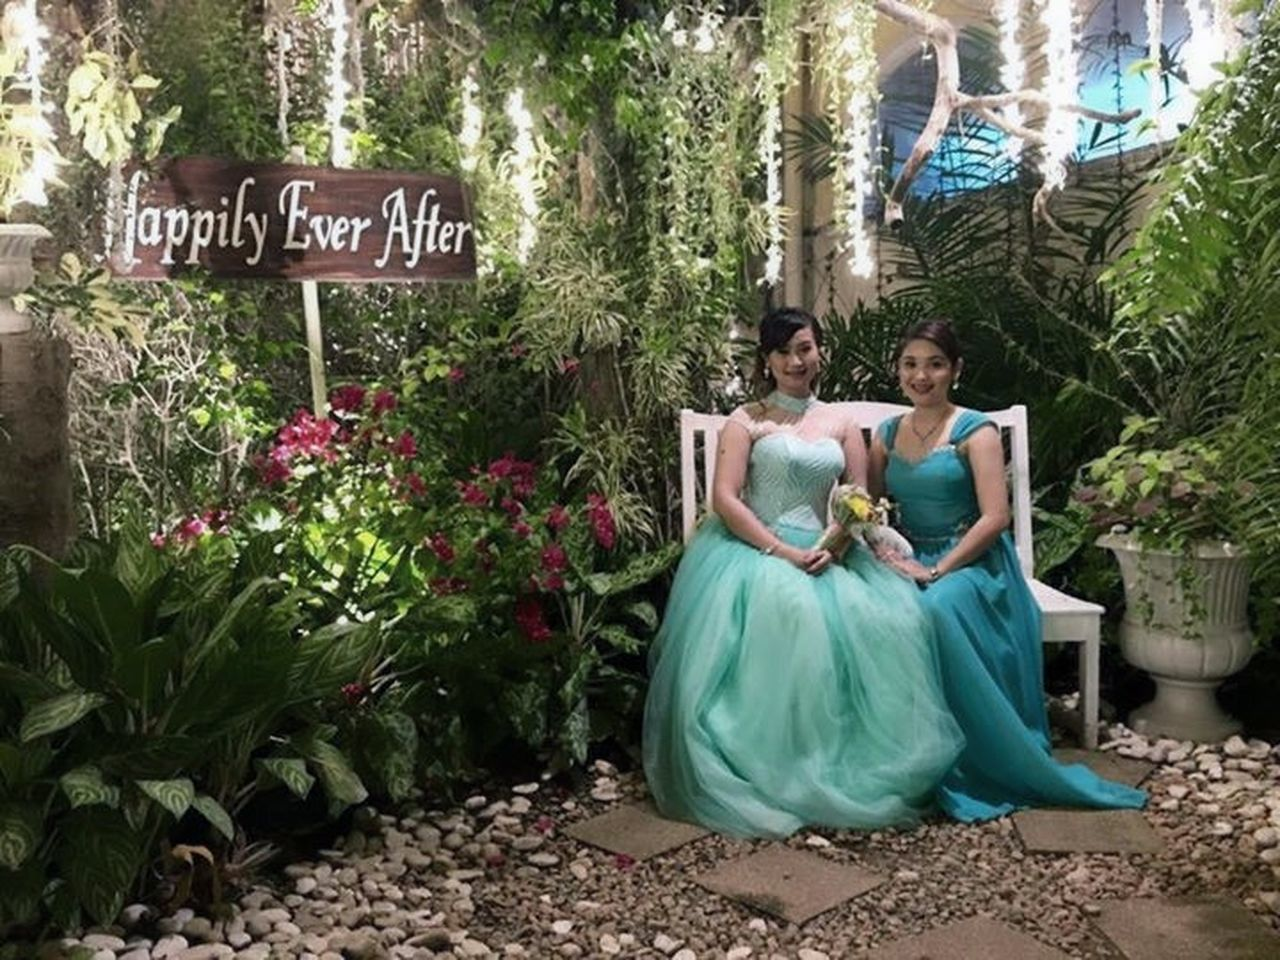 Beauty Bridesmaids Casual Clothing Day Green Color Growth Happily Ever After Information Information Sign Lifestyles Mint Green Nature Outdoors Pinaybeauty Plant Princess Tree Tree Trunk